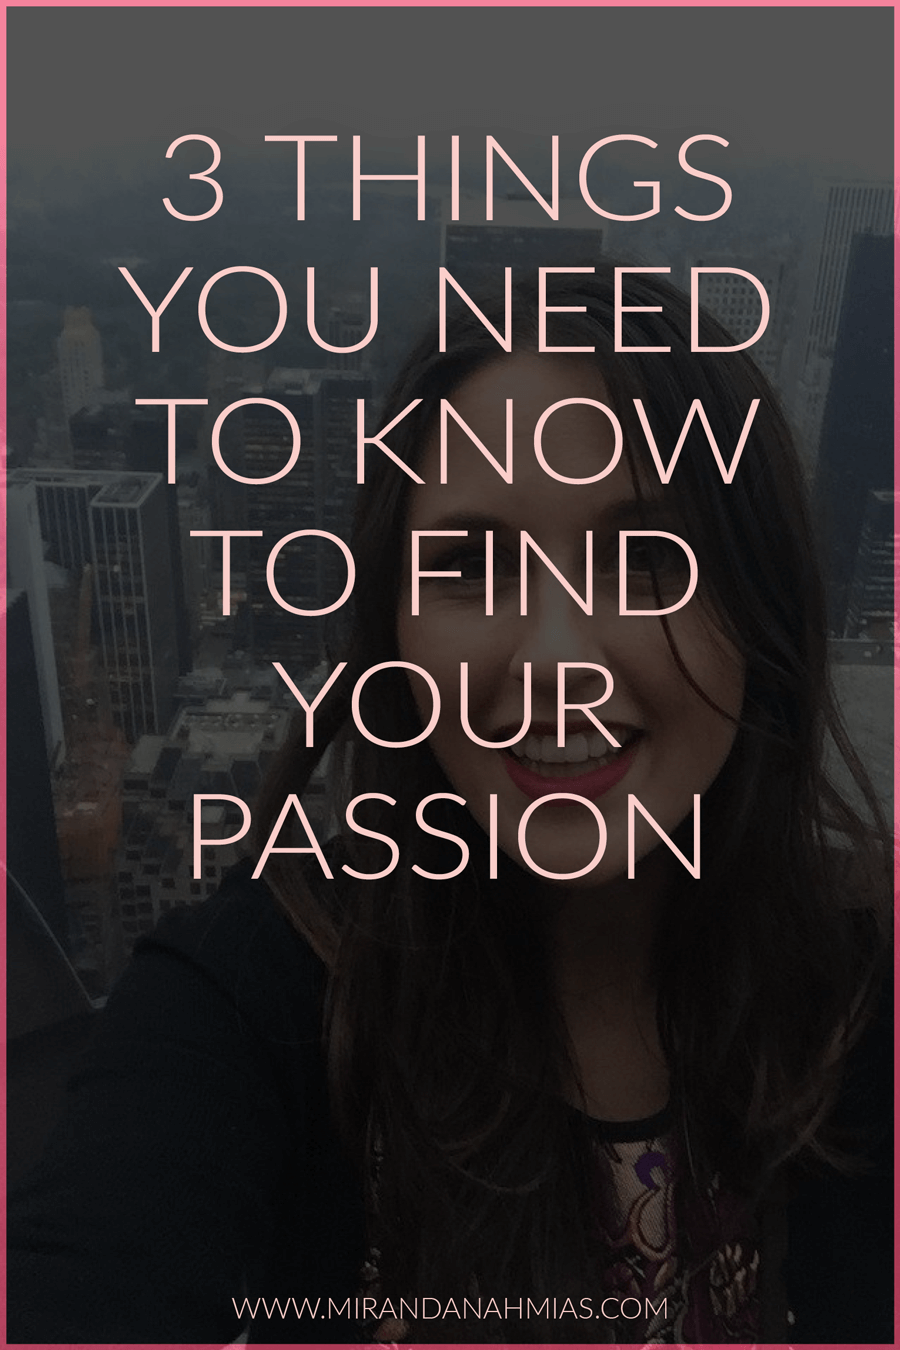 Just getting started out as an online business owner? Here are 3 things you need to know so you can find your passion and make money online | Miranda Nahmias & Co. Score New Clients and Explode Your Business with Systematic Marketing